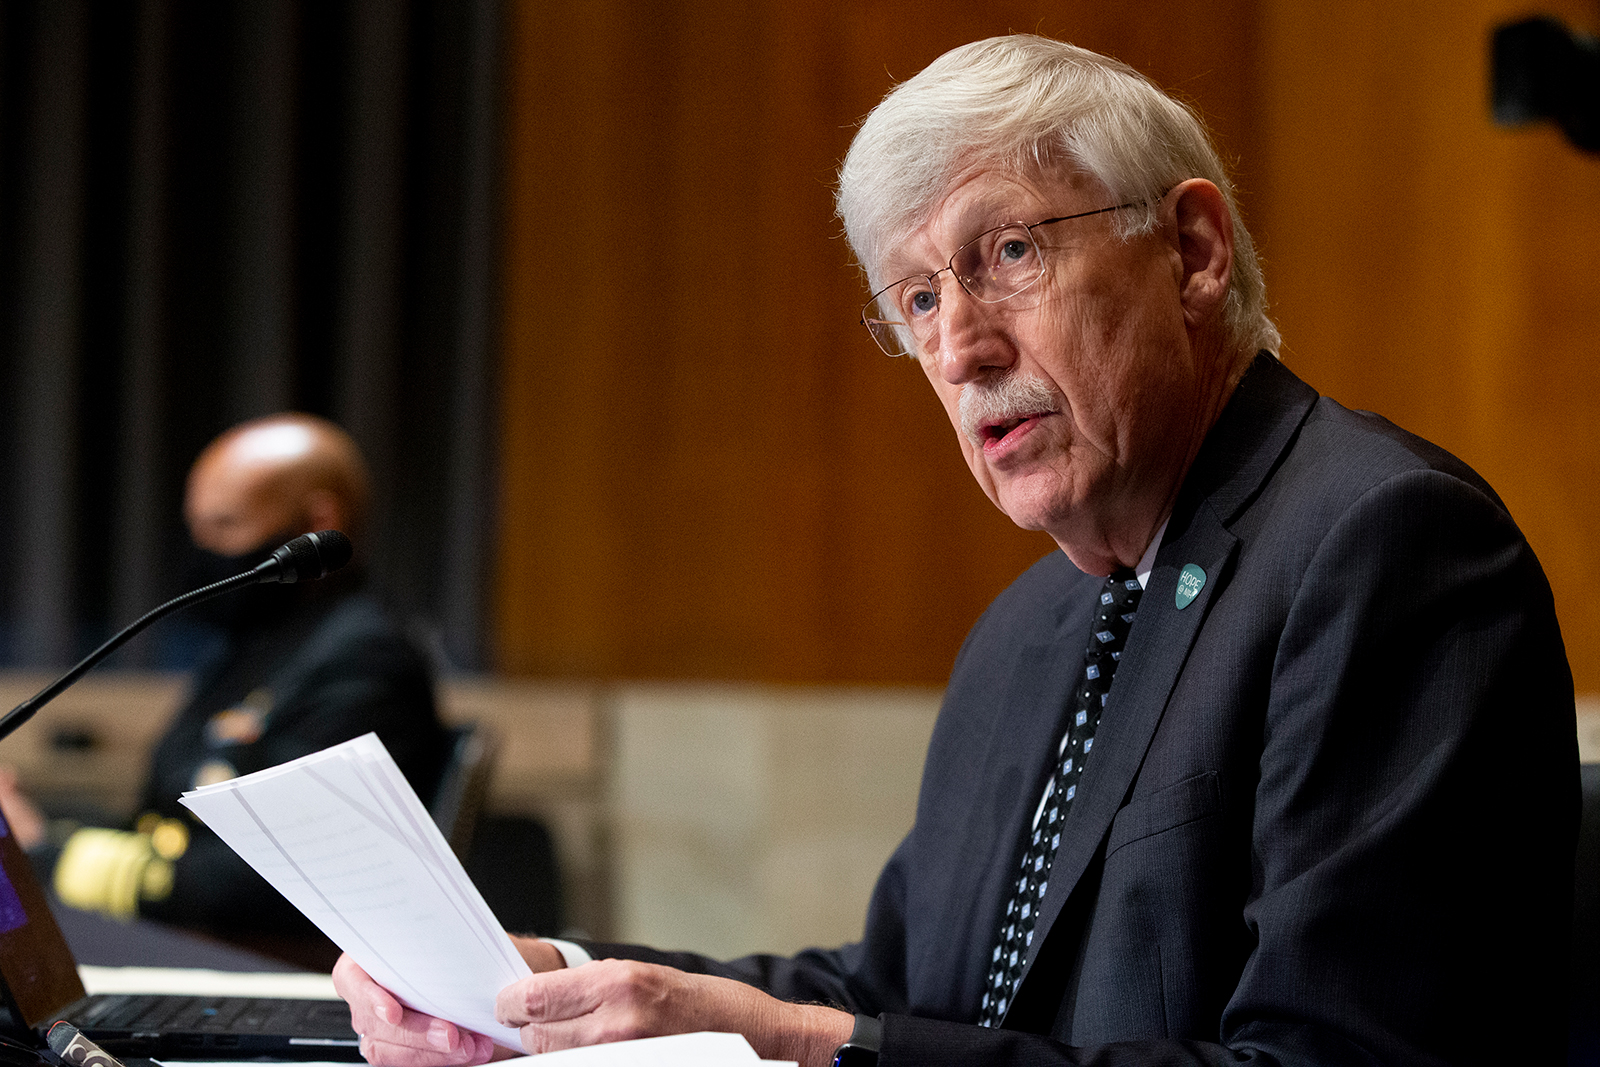 Dr. Francis Collins, Director of the National Institutes of Health, listens during a Senate Health, Education, Labor, and Pensions Committee hearing in Washington, DC, on September 9.